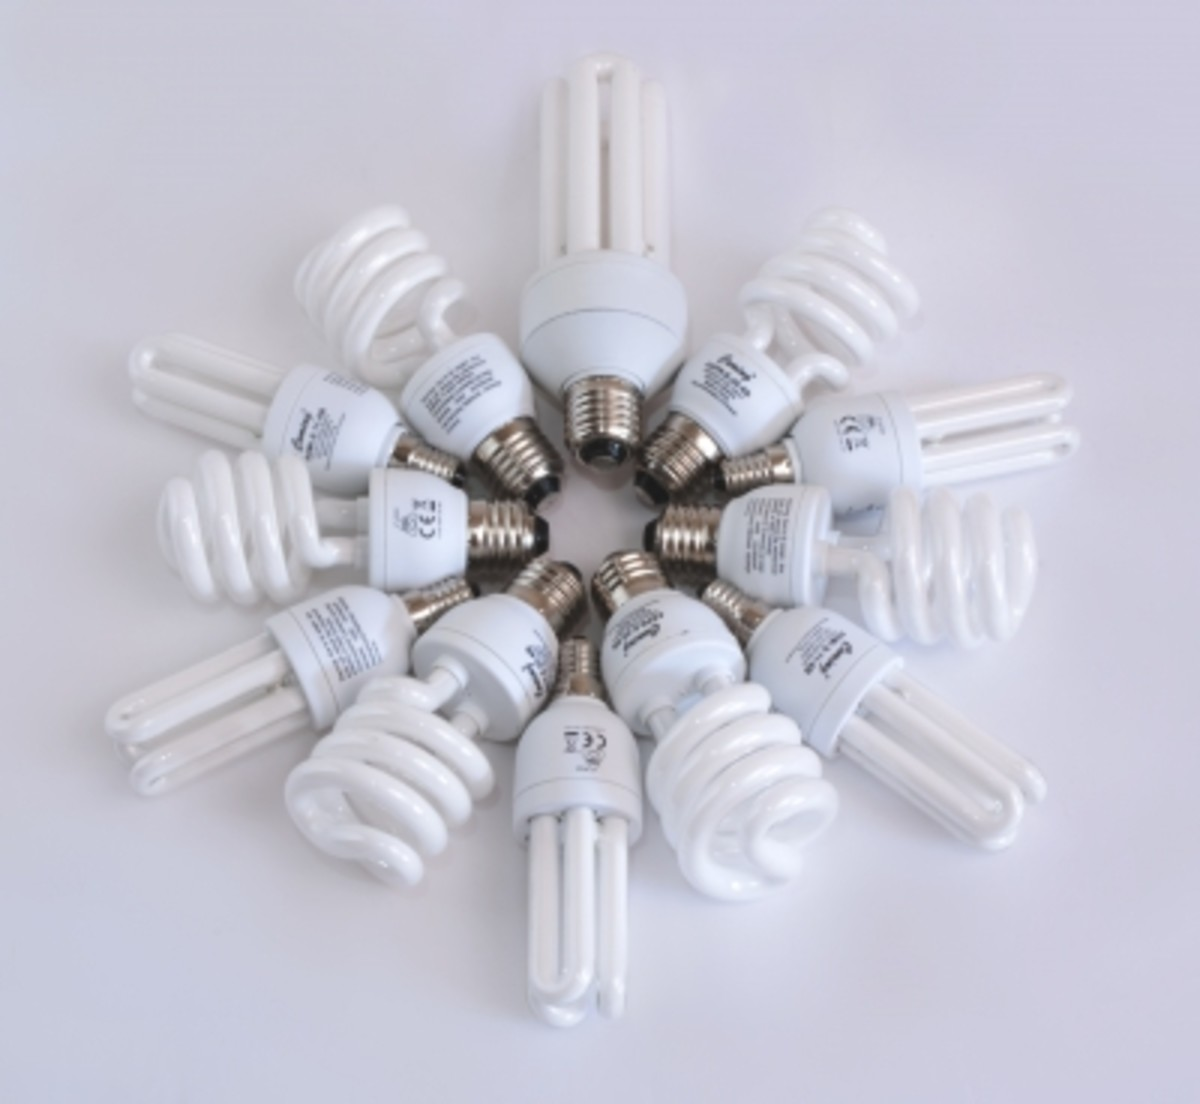 [Energy Efficient] Bulbs Collection by Danilo Rizzuti